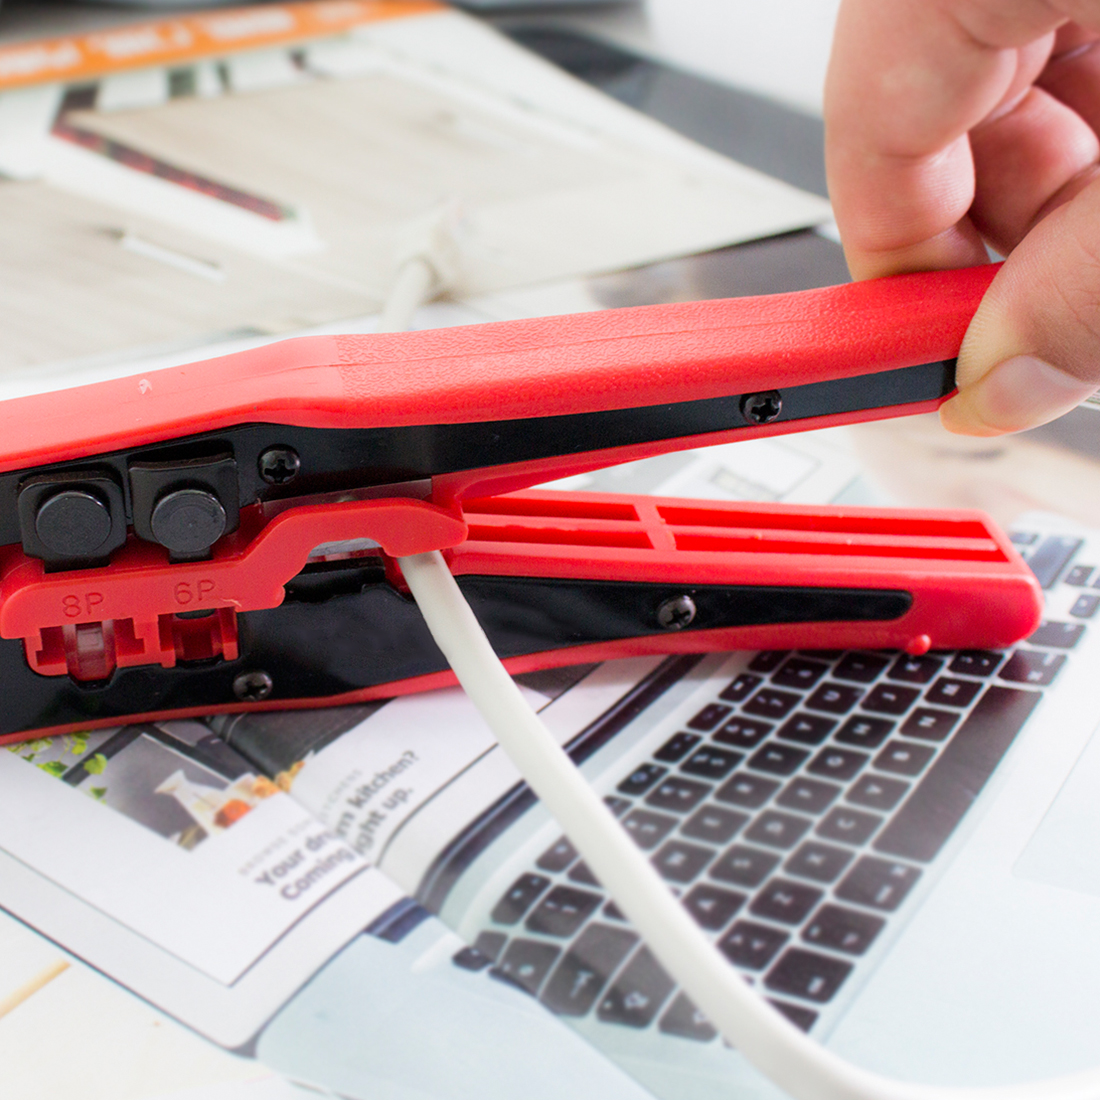 NOYOKERE Networking Tools Portable Multifunctional Cable Wire Stripper Crimping Pliers